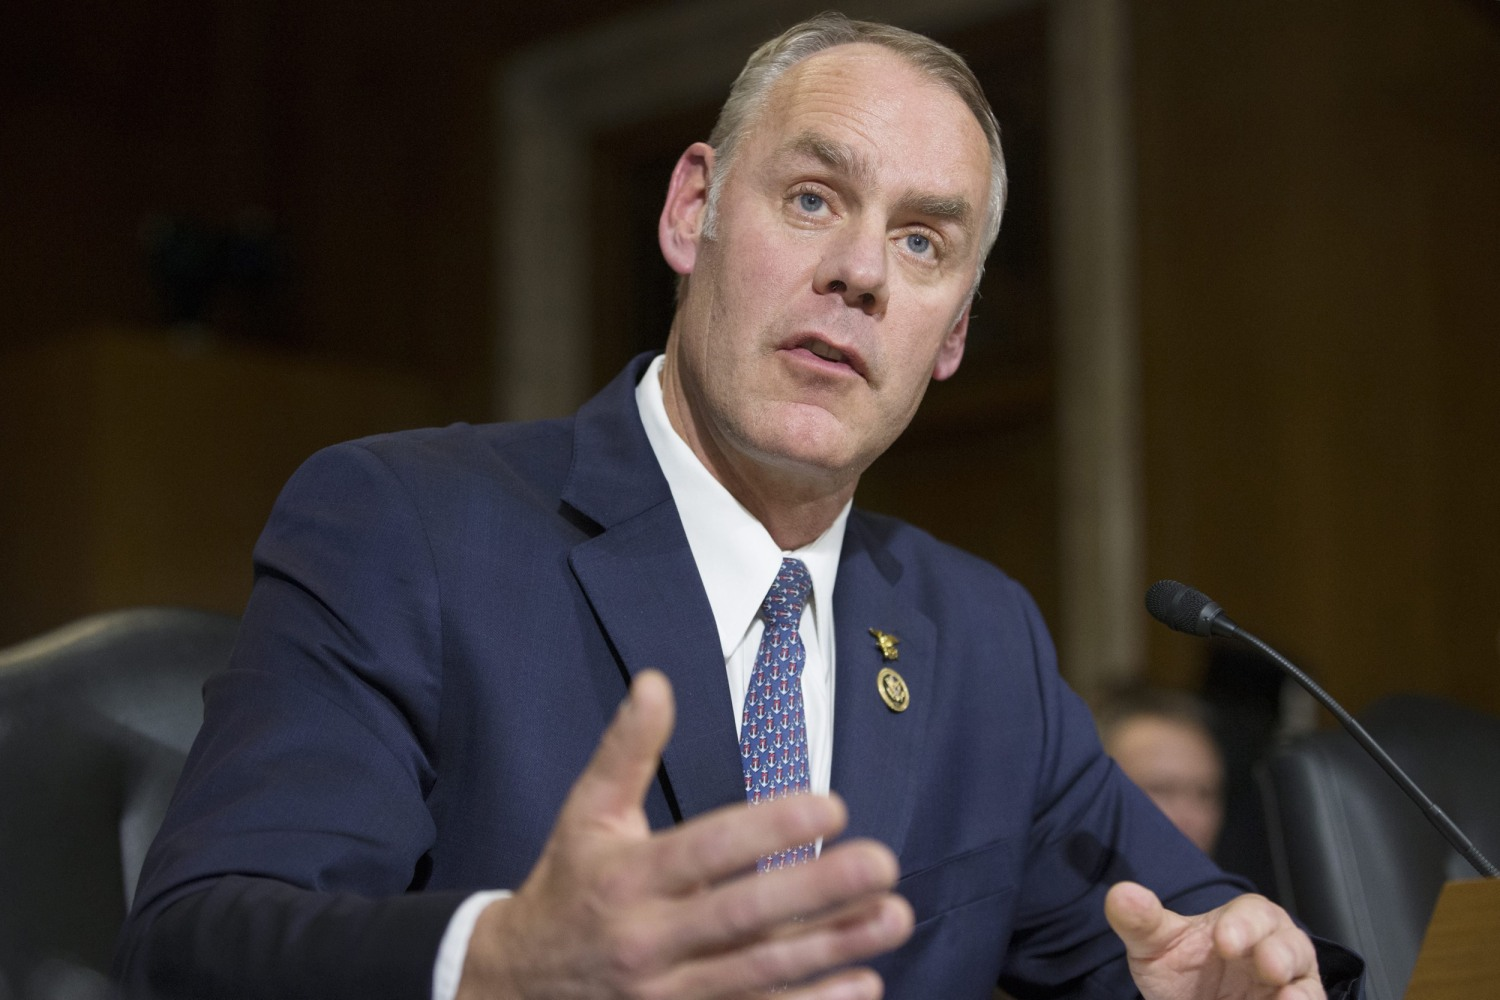 Ryan Zinke Montana Congressman Confirmed As Trump 39 S Interior Secretary Nbc News